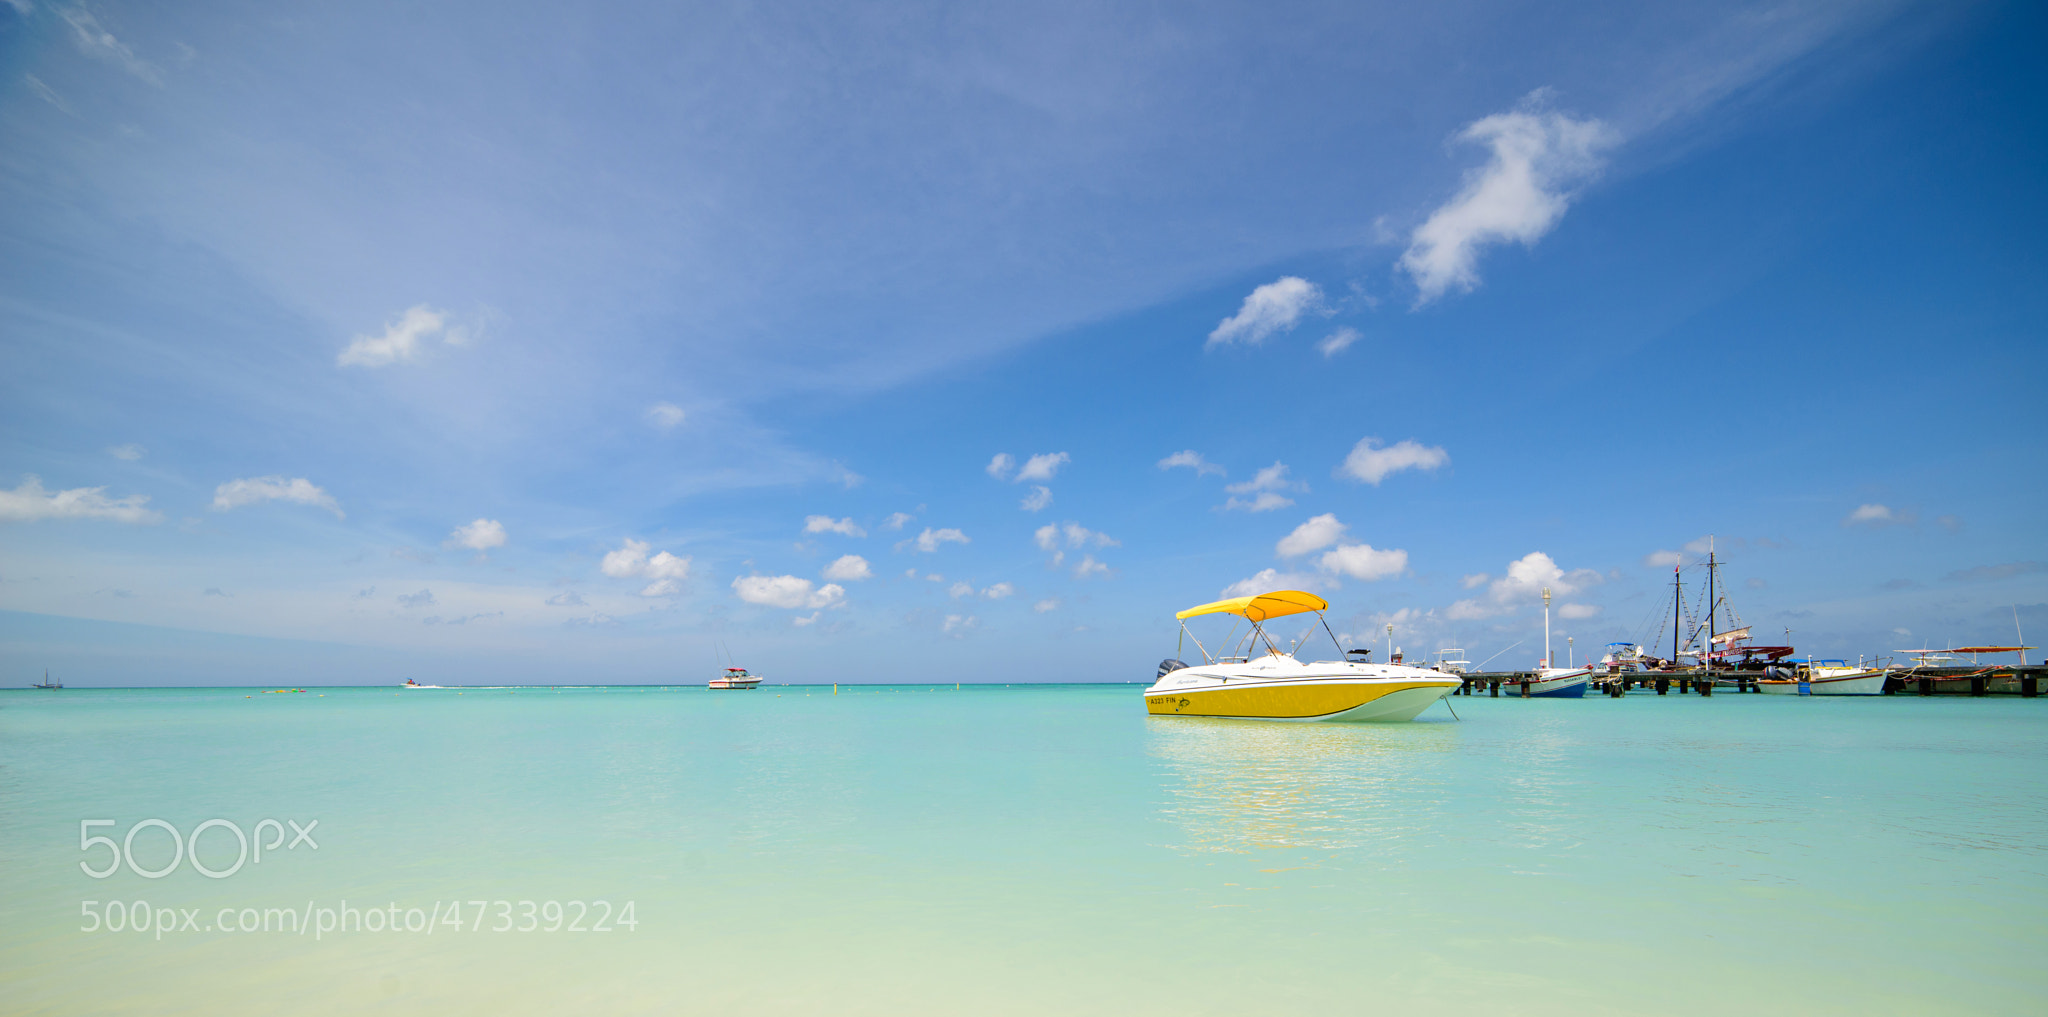 Photograph Aruba: Sports Boat by Sven Bannuscher on 500px